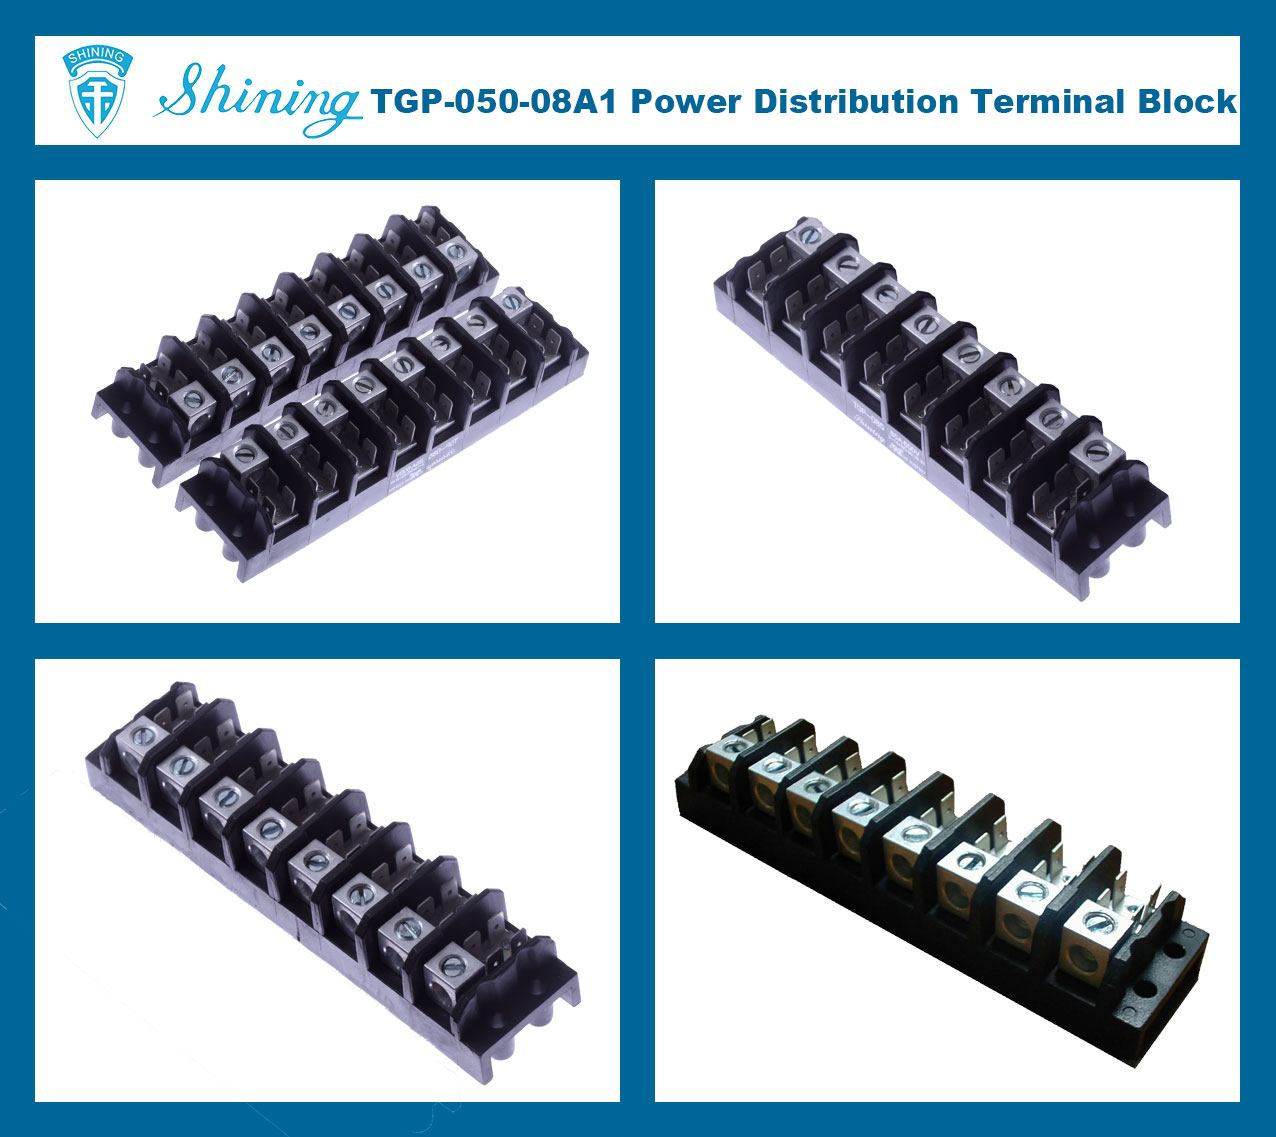 TGP-050-08A1 600V 50A 8 Pole Electrical Power Terminal Block